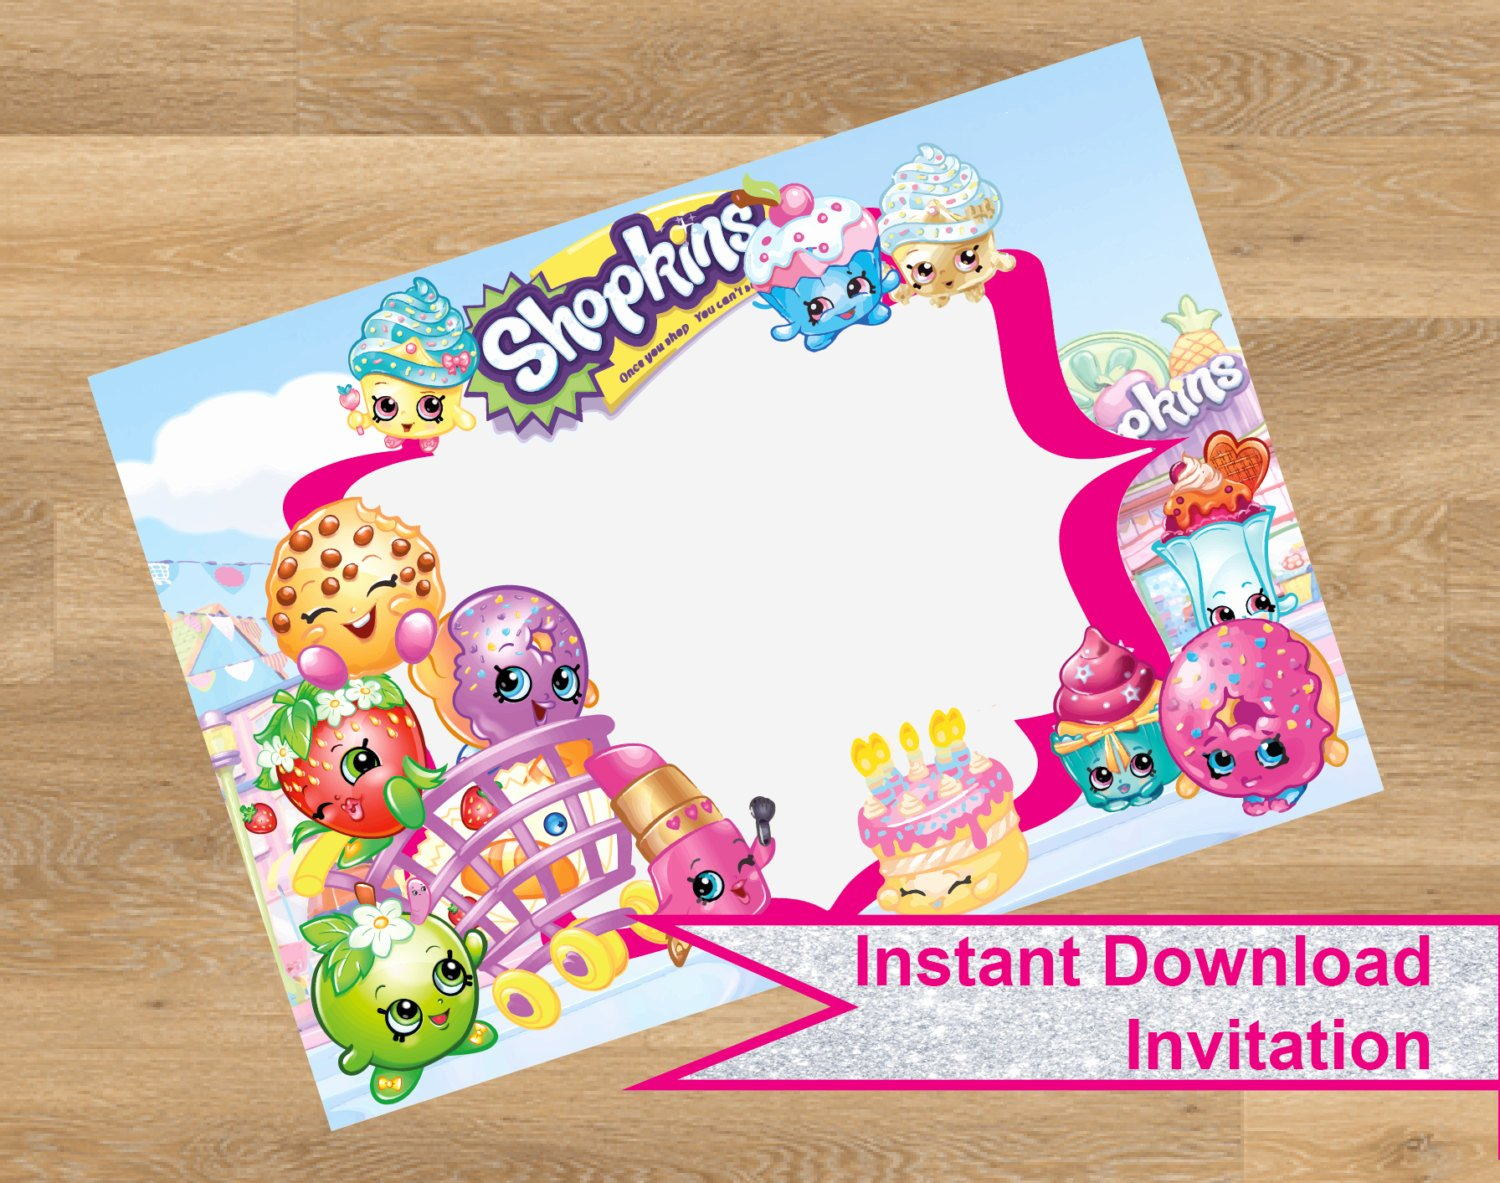 Shopkins Invitations Template Free Unique Shopkins Invitation Shopkins Birthday by Designmadedesigns